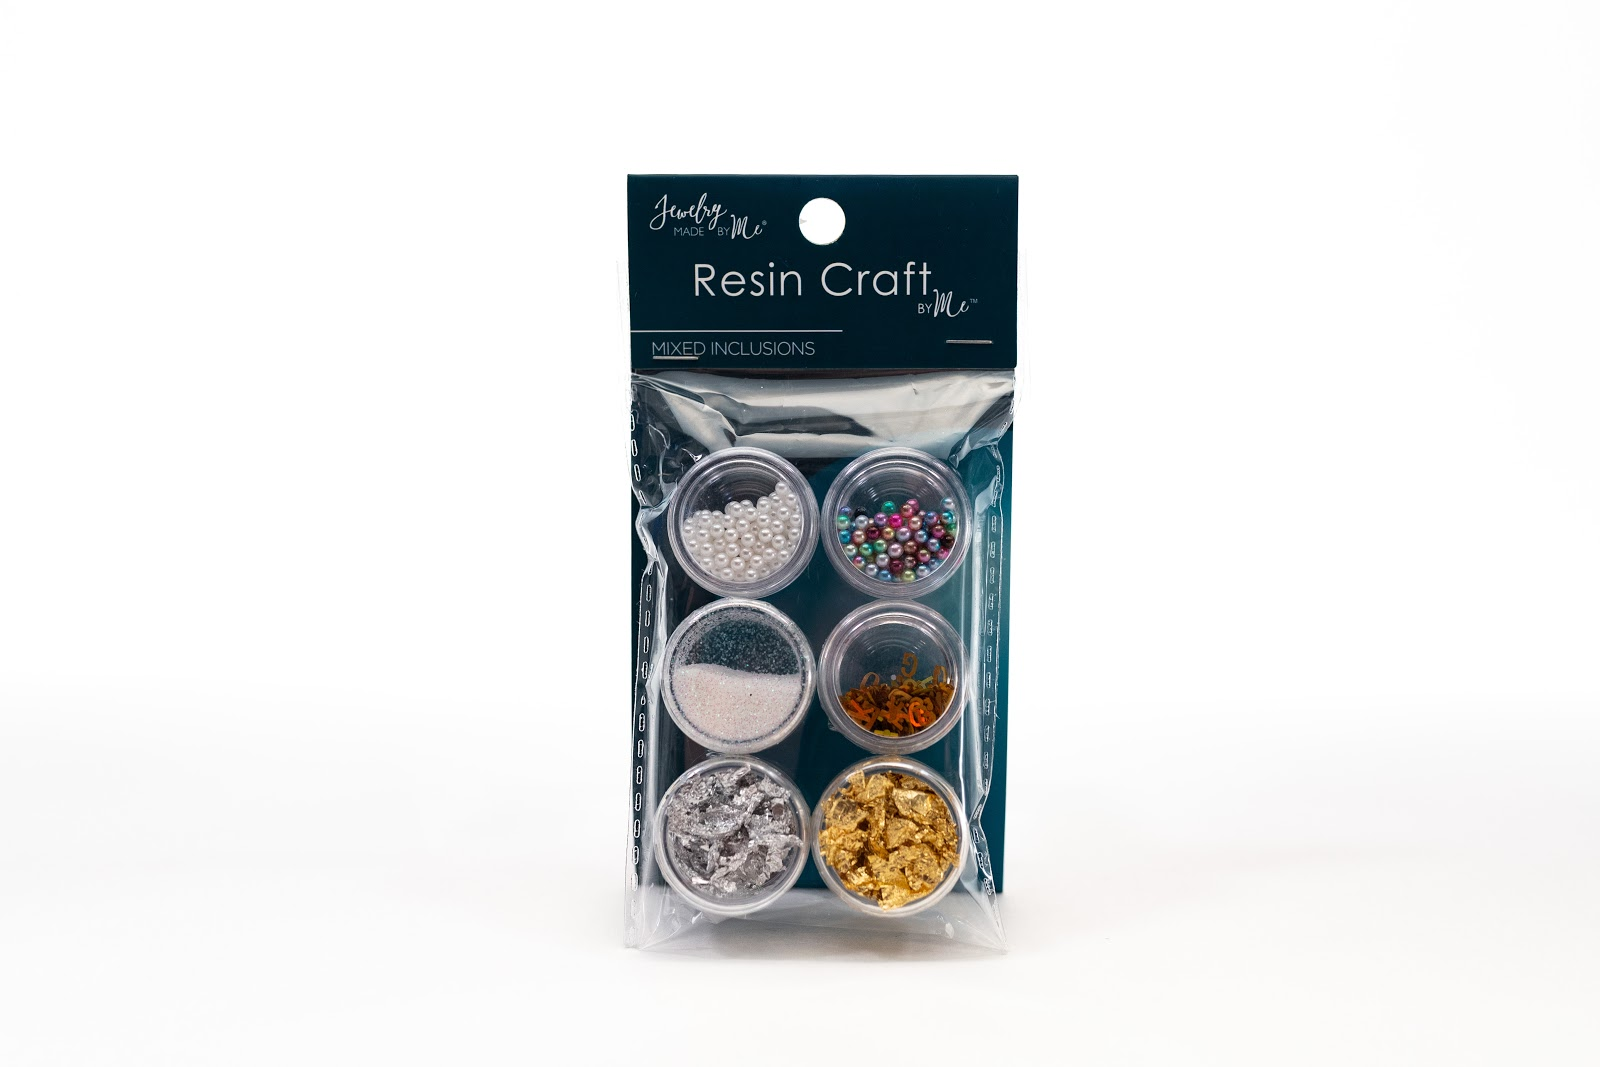 E-commerce product photography for Jewelry Made by Me featuring their Resin Craft product packaging on a white background.